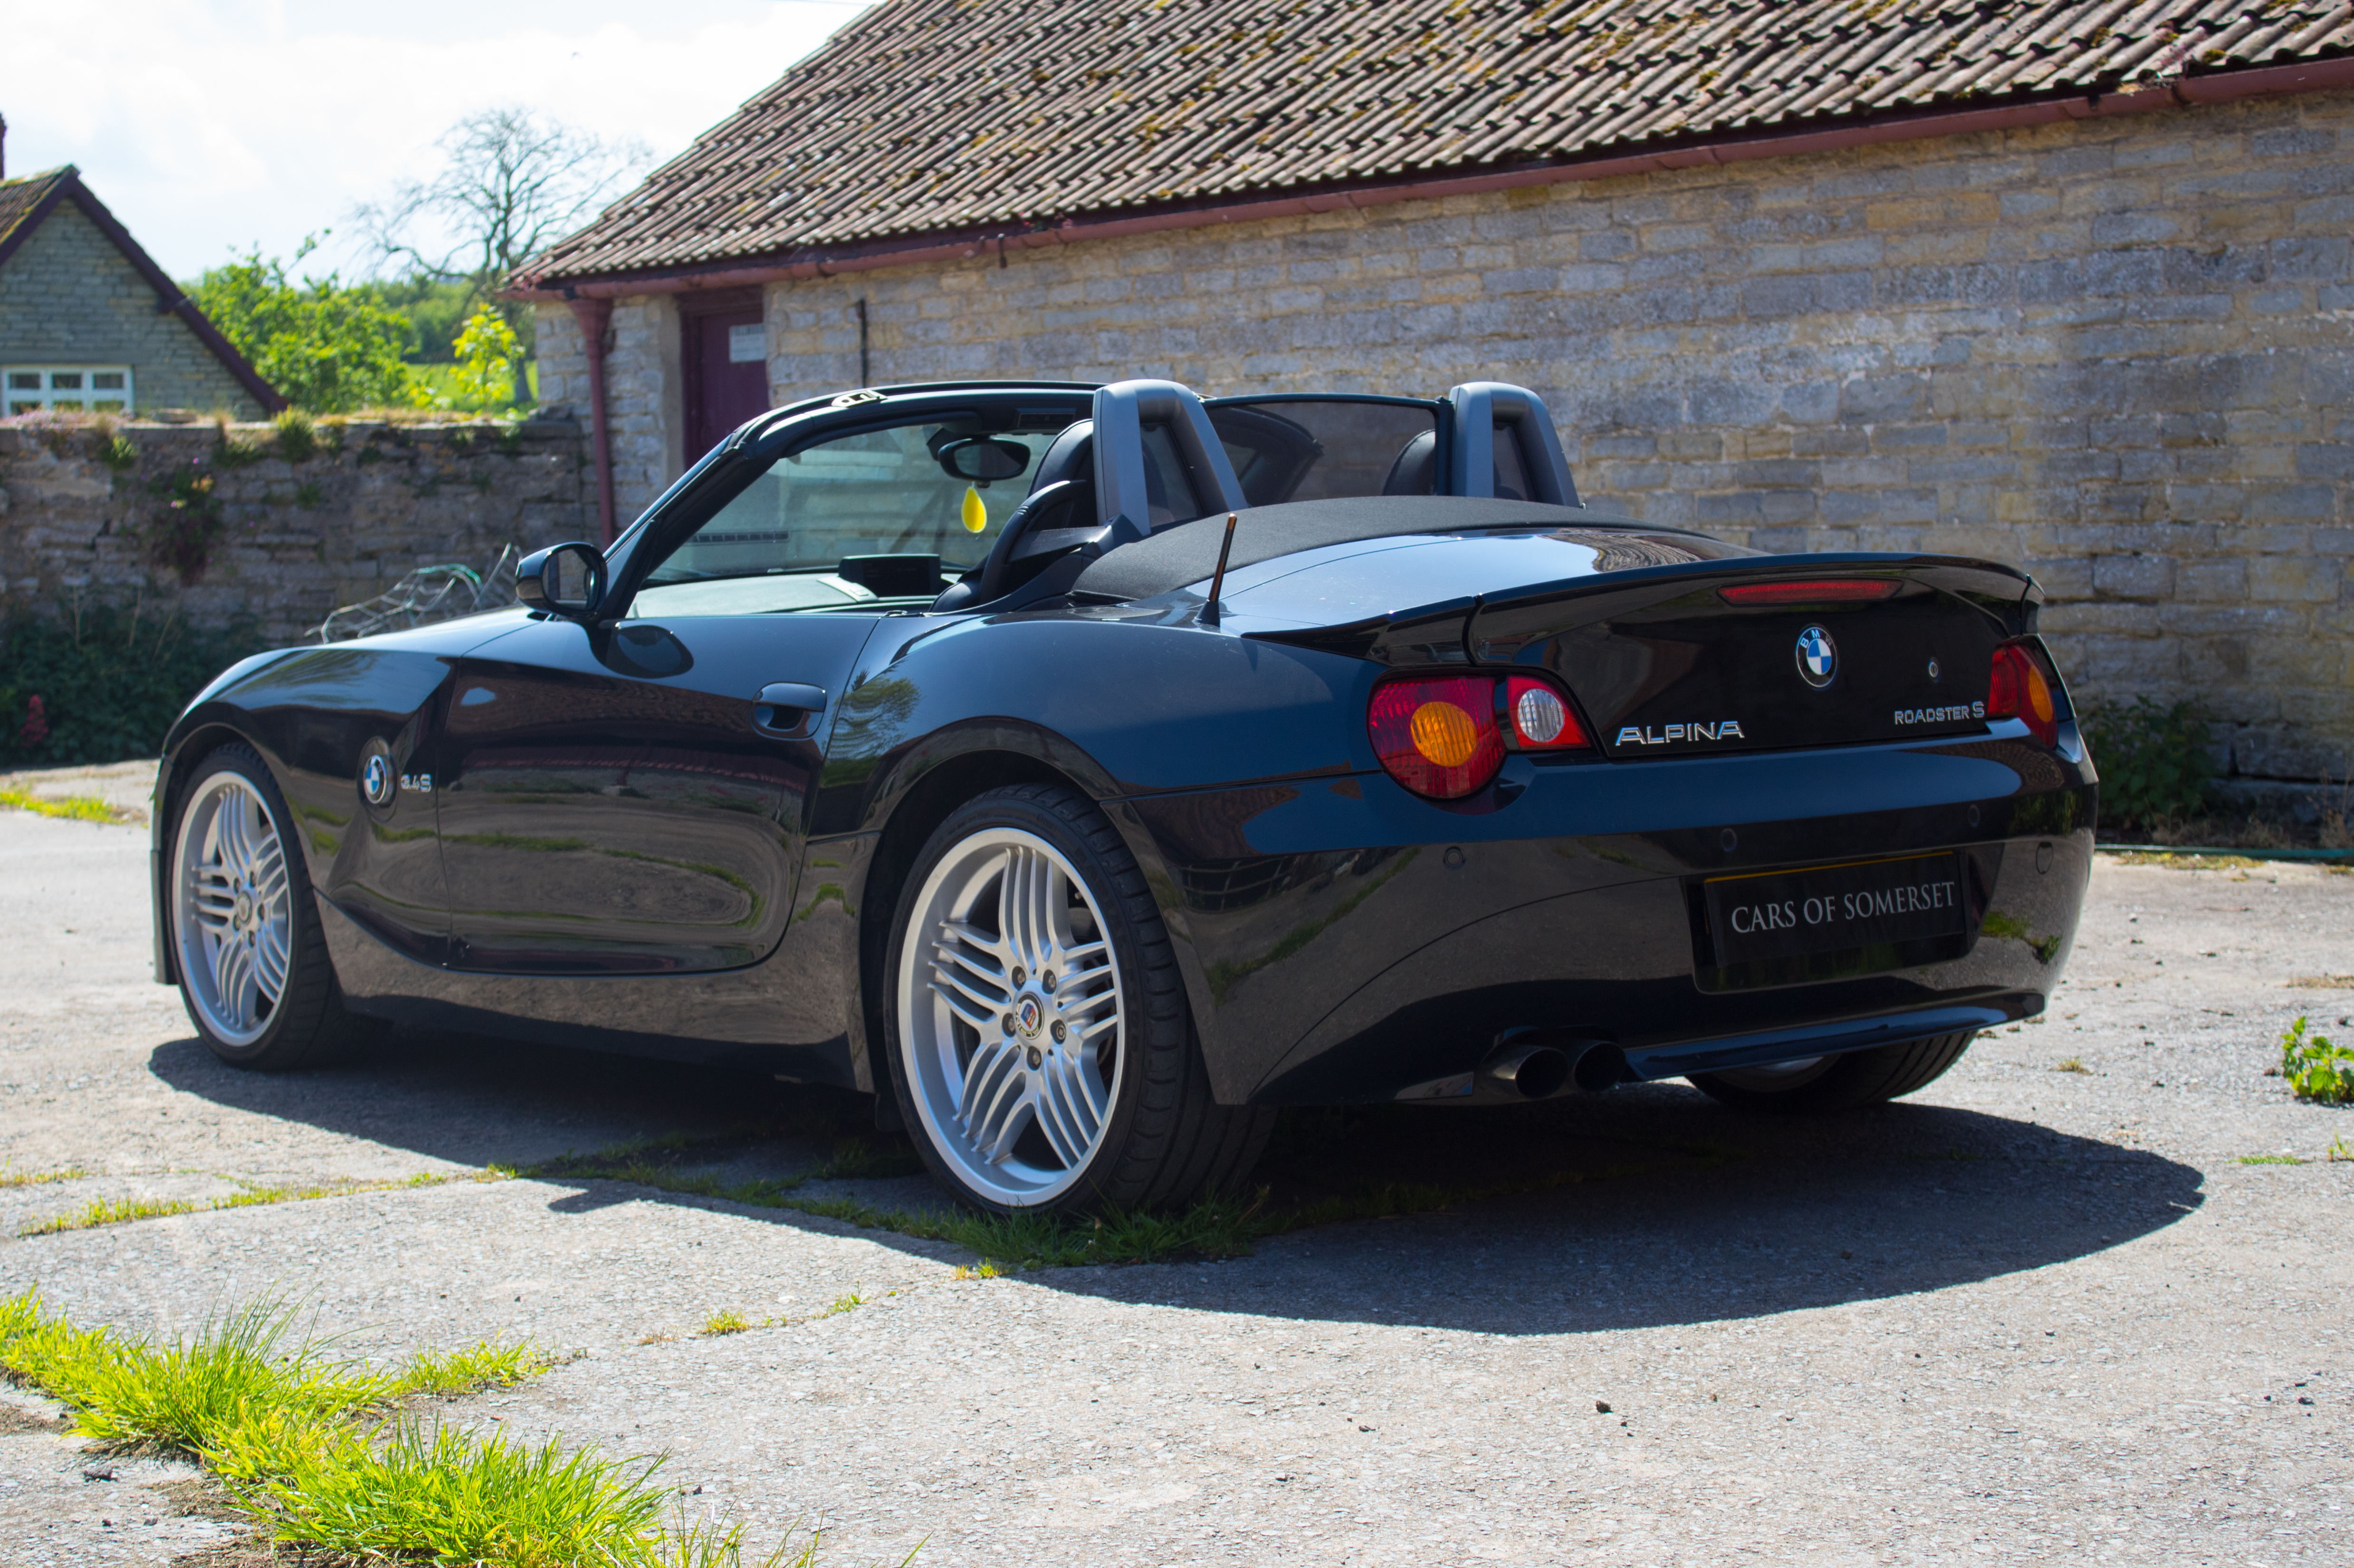 Sold 2005 Bmw Z4 Alpina Roadster 3 4 S Cars Of Somerset